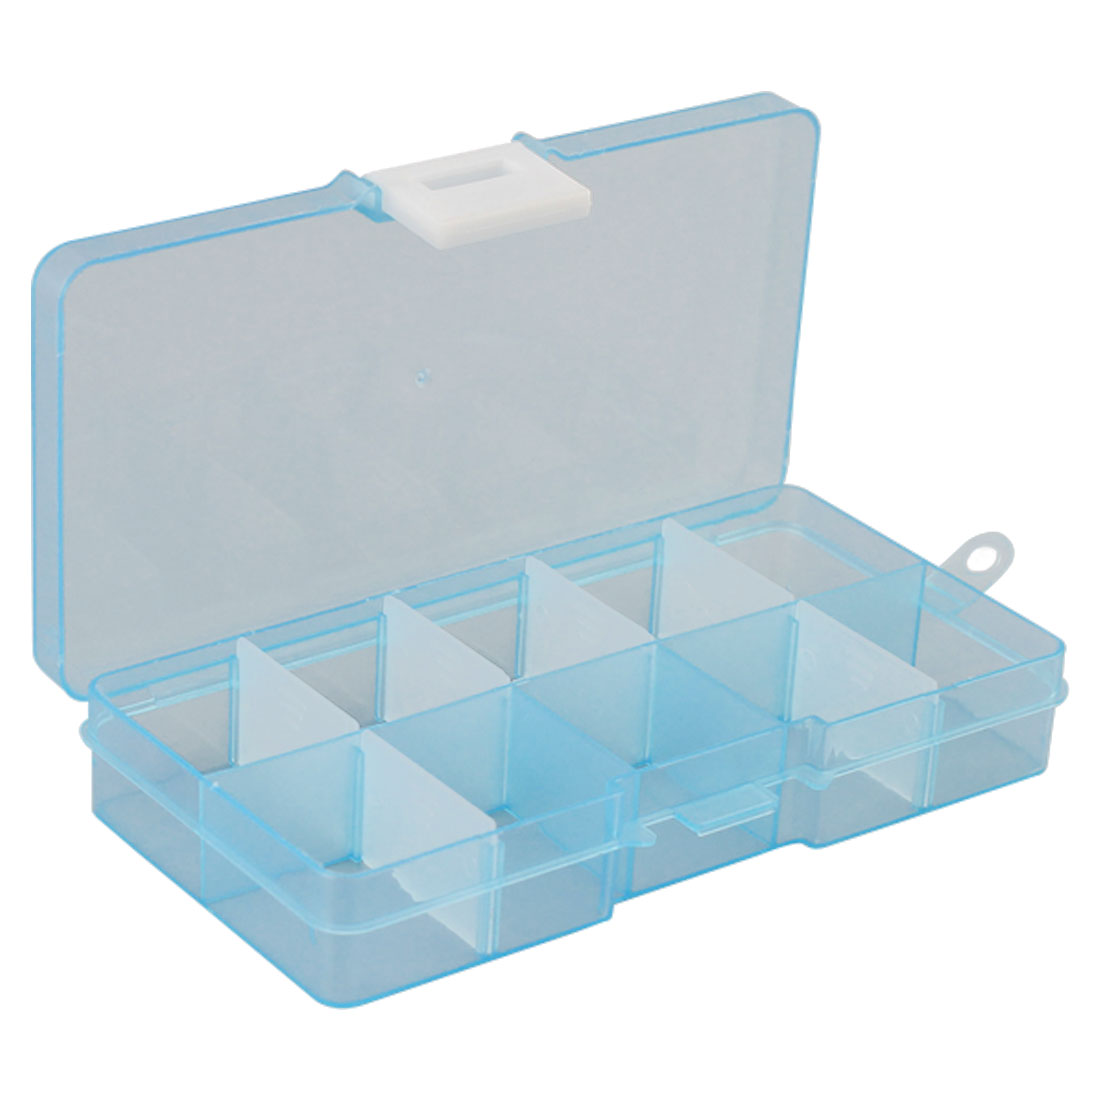 Organizer Plastic Case 10 Slots Cells Colorful Portable Jewelry Tool Storage Box Container Ring Electronic Parts Screw Beads